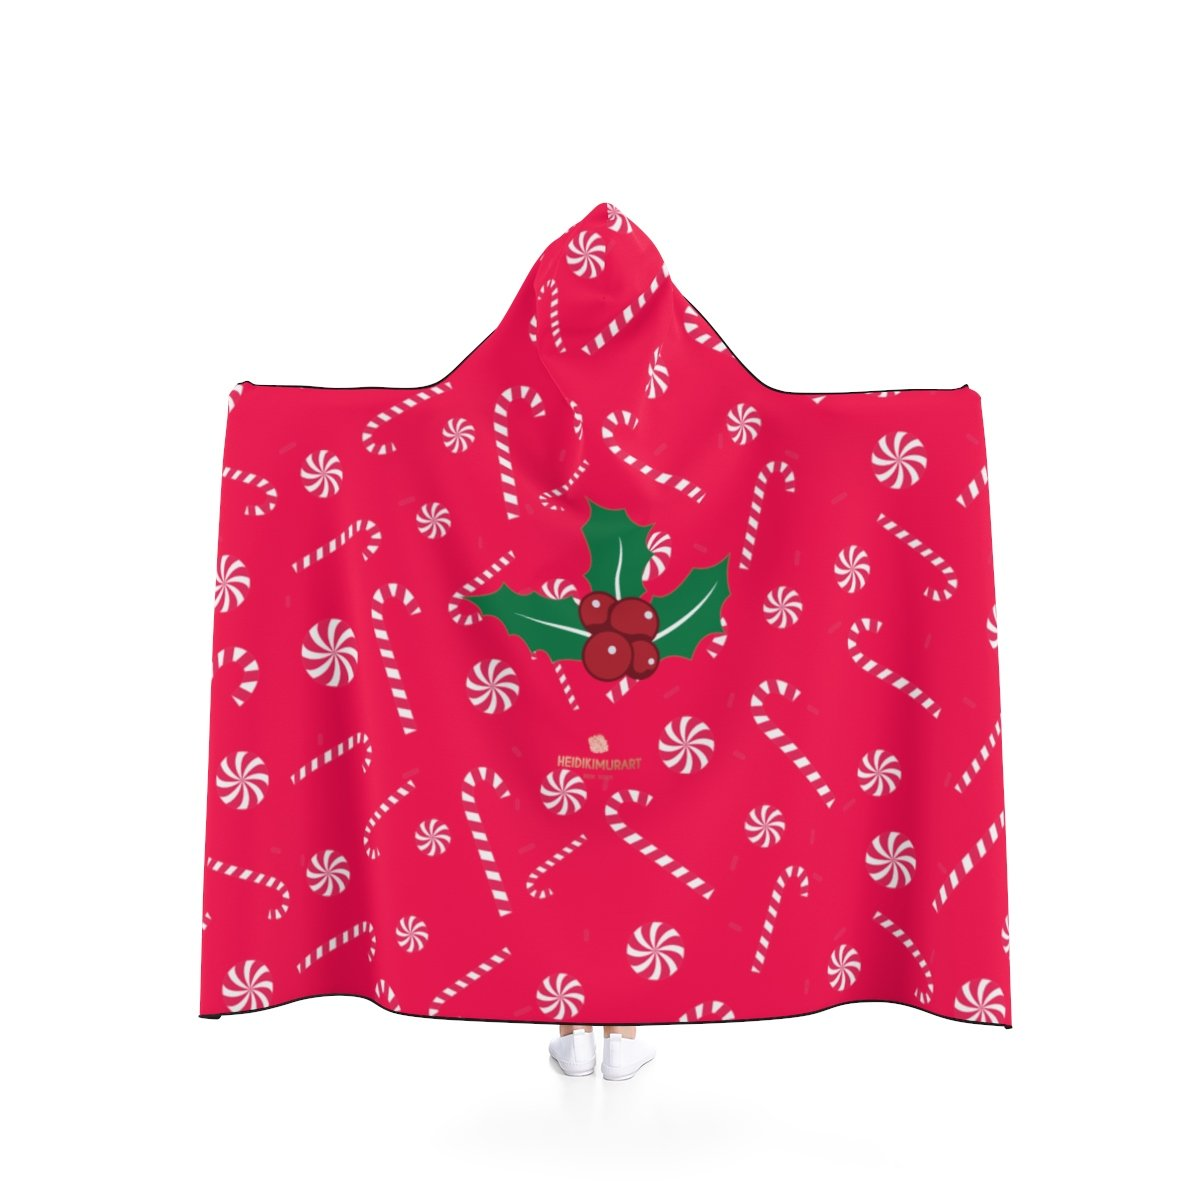 Comfy Lightweight Christmas Red Sugar Cane Designer Holiday Party Hooded Blanket-Hooded Blanket-80x56-Heidi Kimura Art LLC